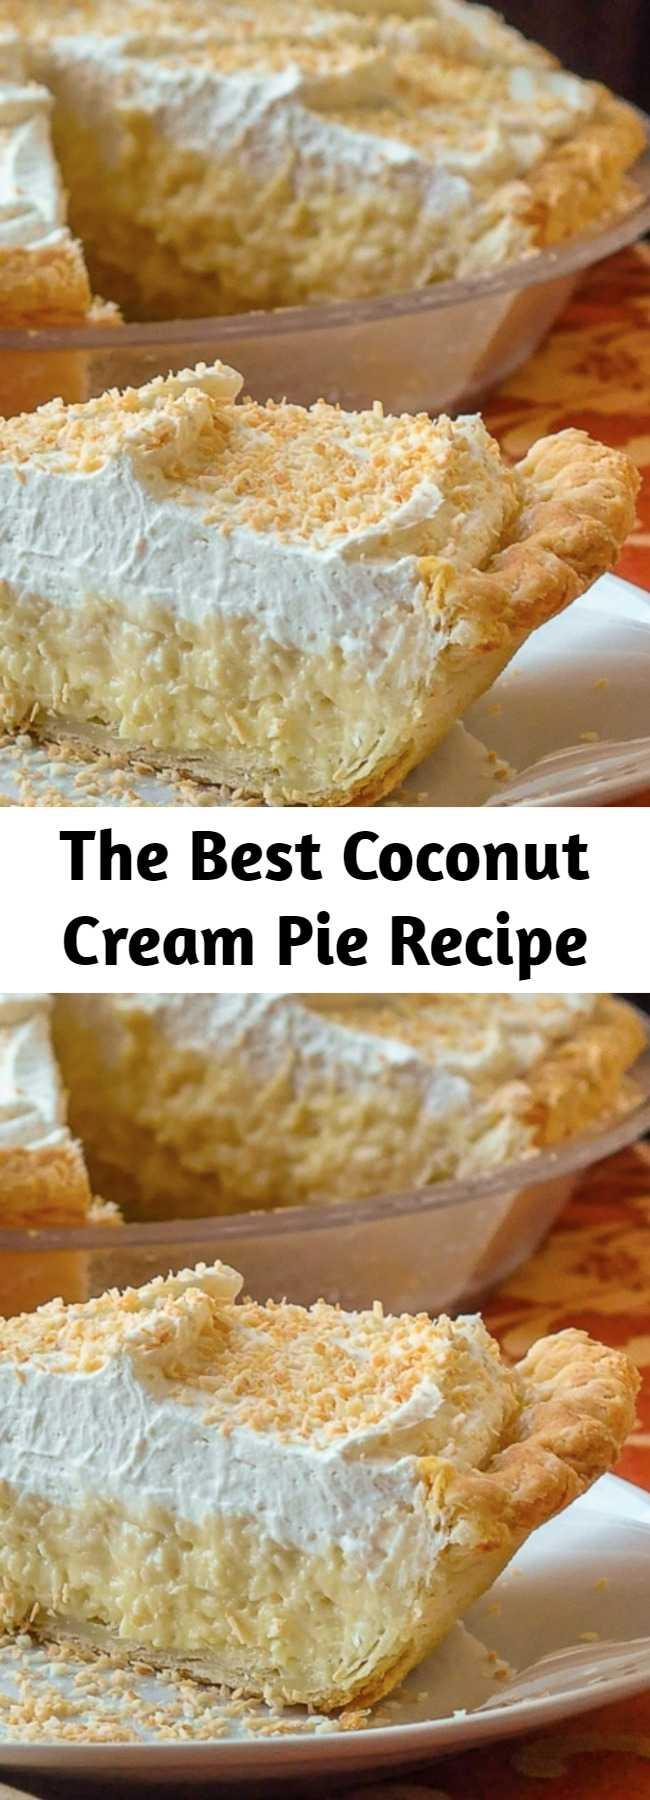 The Best Coconut Cream Pie Recipe - The Absolute Best Coconut Cream Pie. Truly the absolute best! A creamy, old-fashioned coconut cream pie recipe that this avid baker has used for over 30 years. I have never tasted a better recipe.